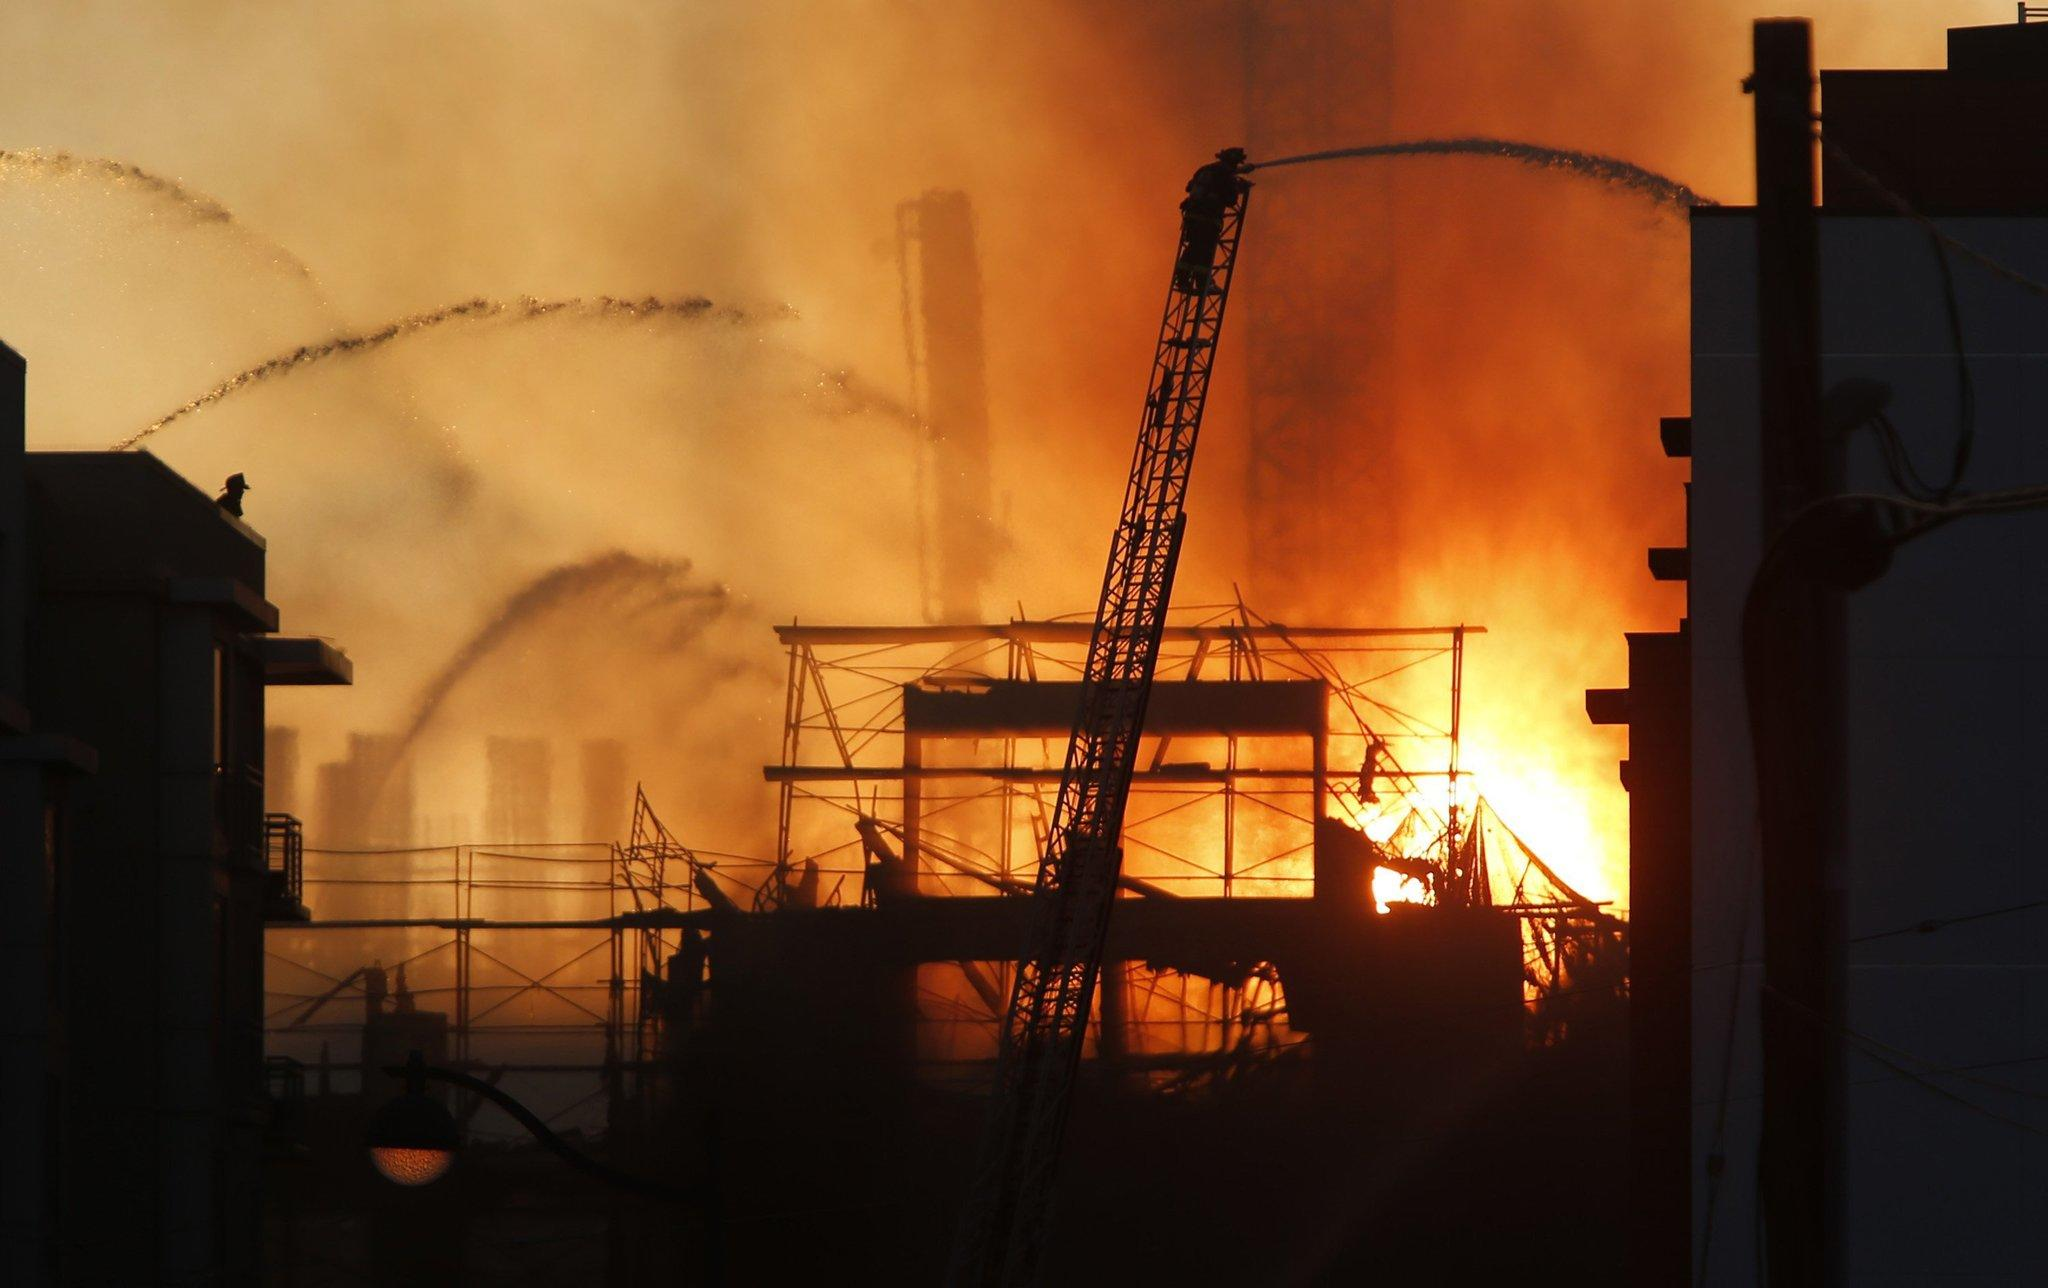 Firefighters battle a multi-story blaze in a residential building under construction in the Mission Bay neighborhood of San Francisco.